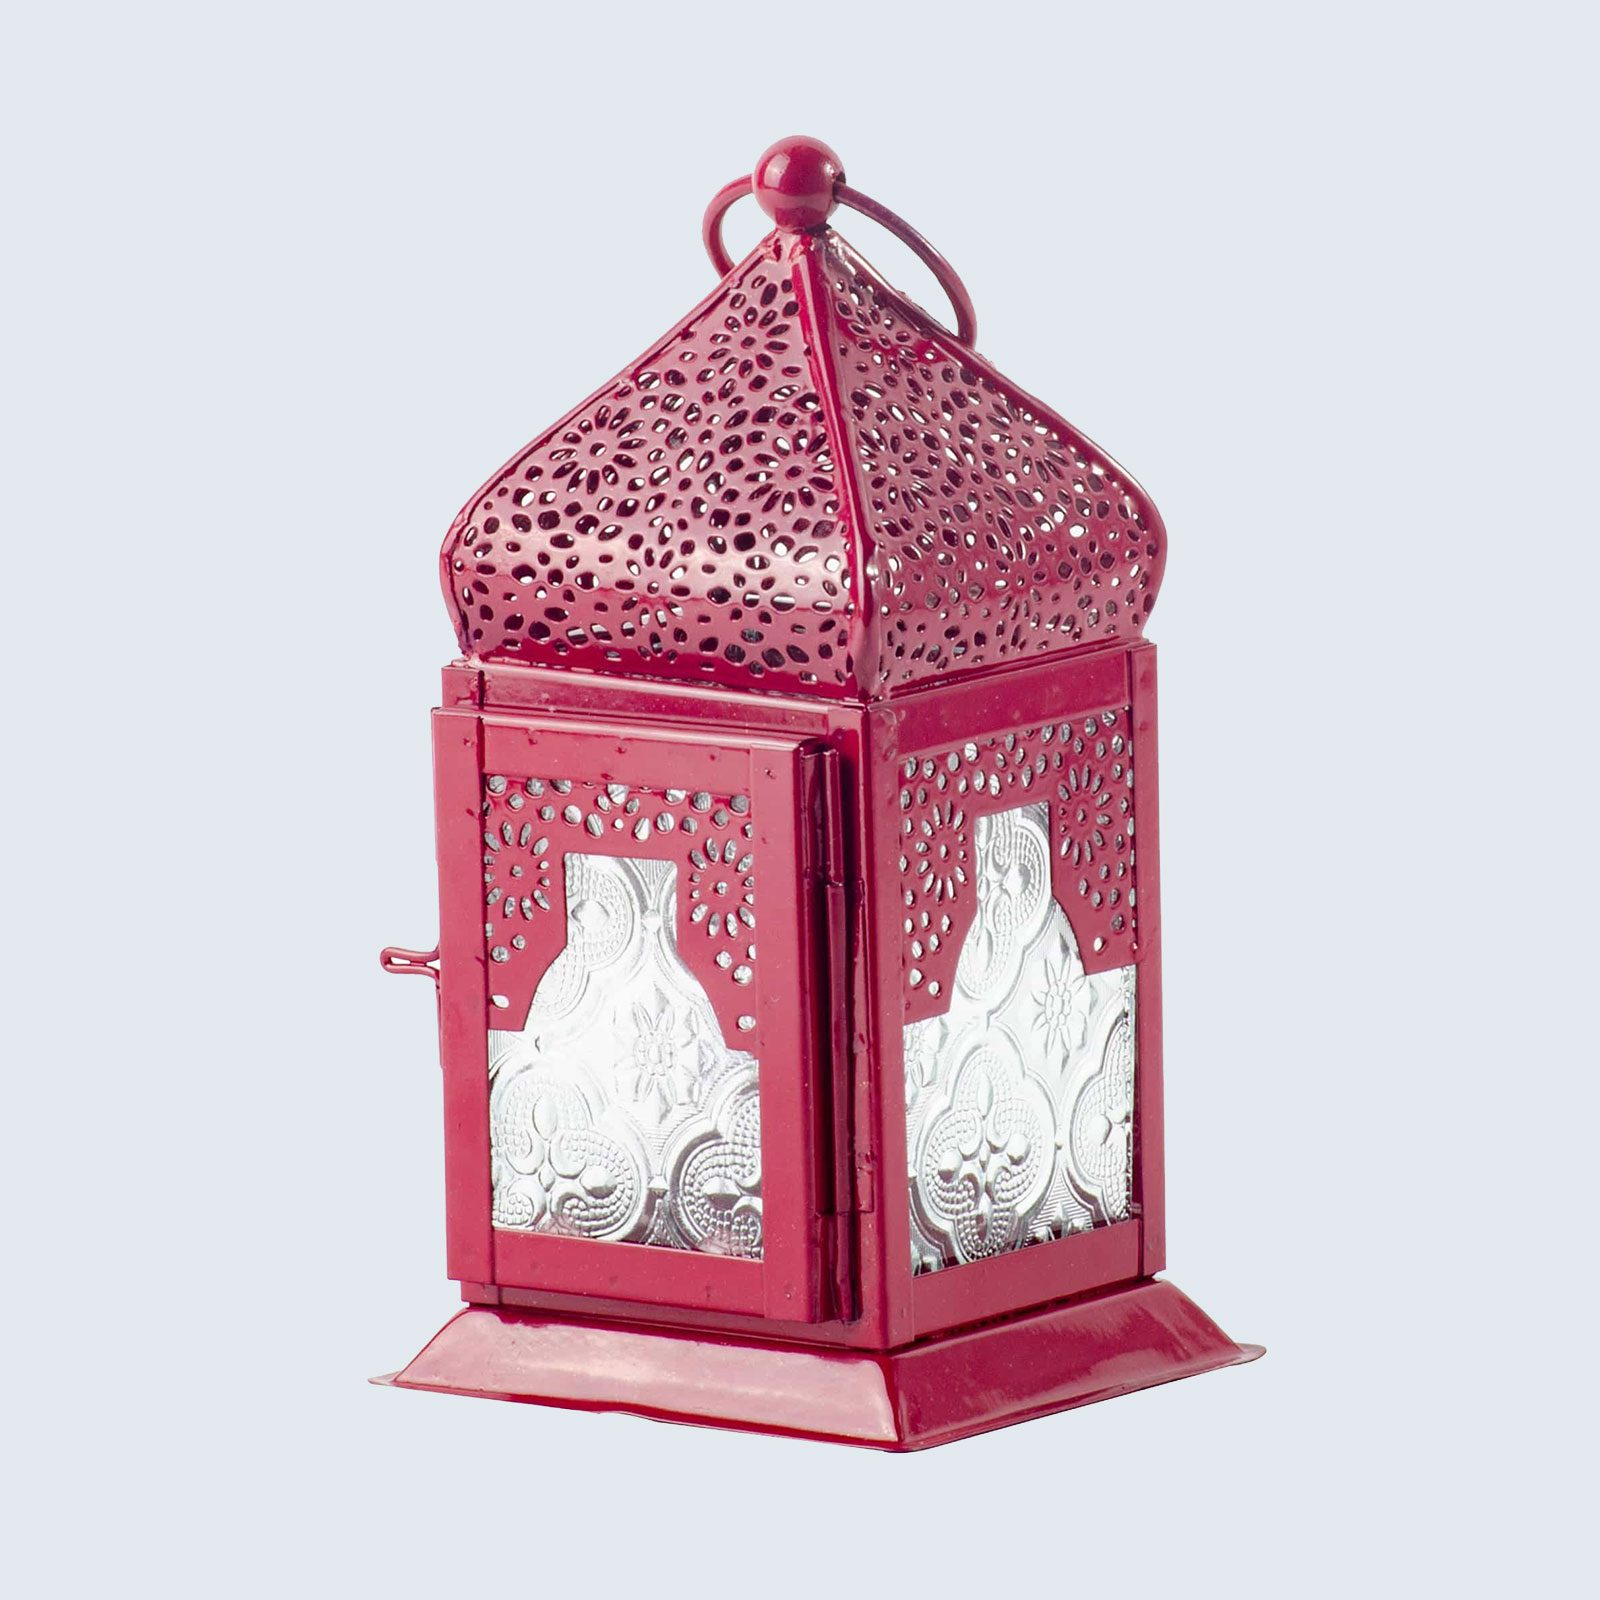 For the one obsessed with good lighting: Noah's Ark Small Hanging Lantern